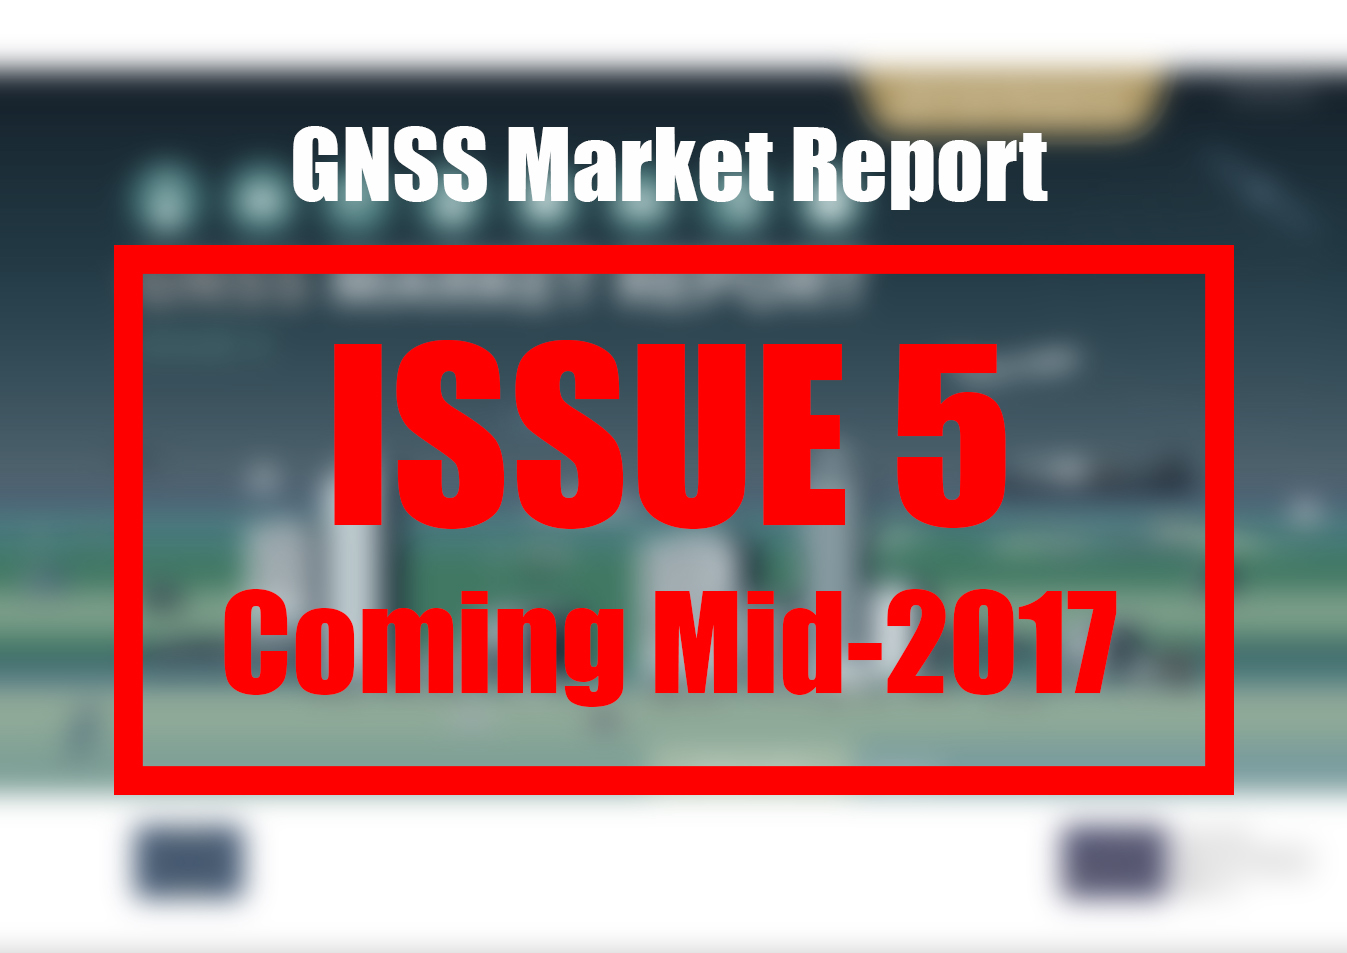 The global GNSS community sees the Market Report as invaluable resources for policy-making and business development.